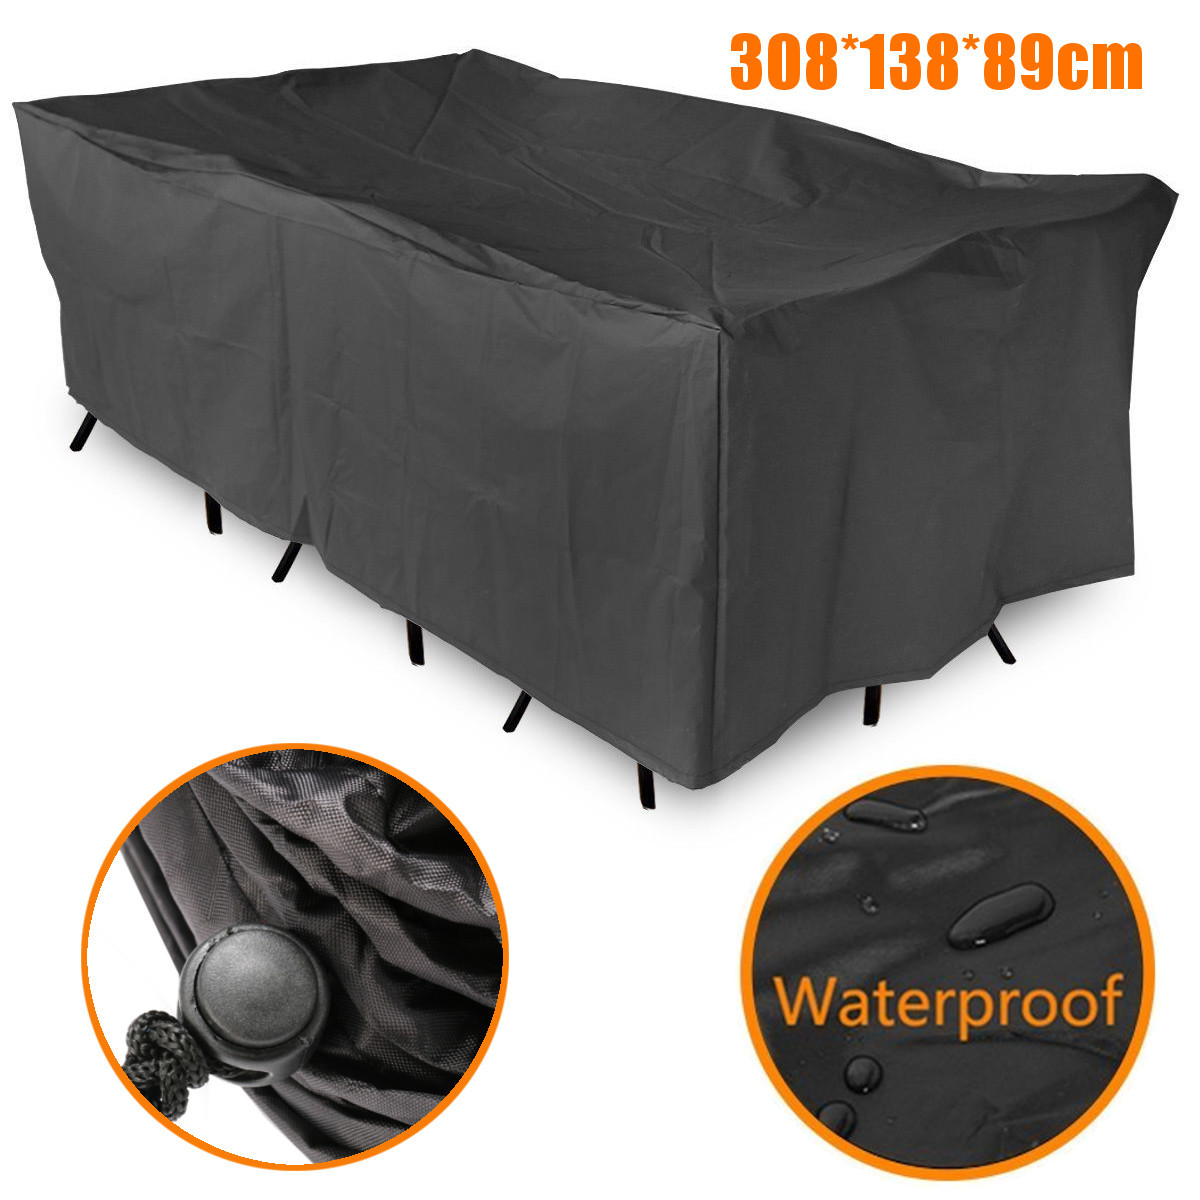 Furniture Dust Cover Fabric: 308x138cm Waterproof Patio Garden Furniture Cover Chair